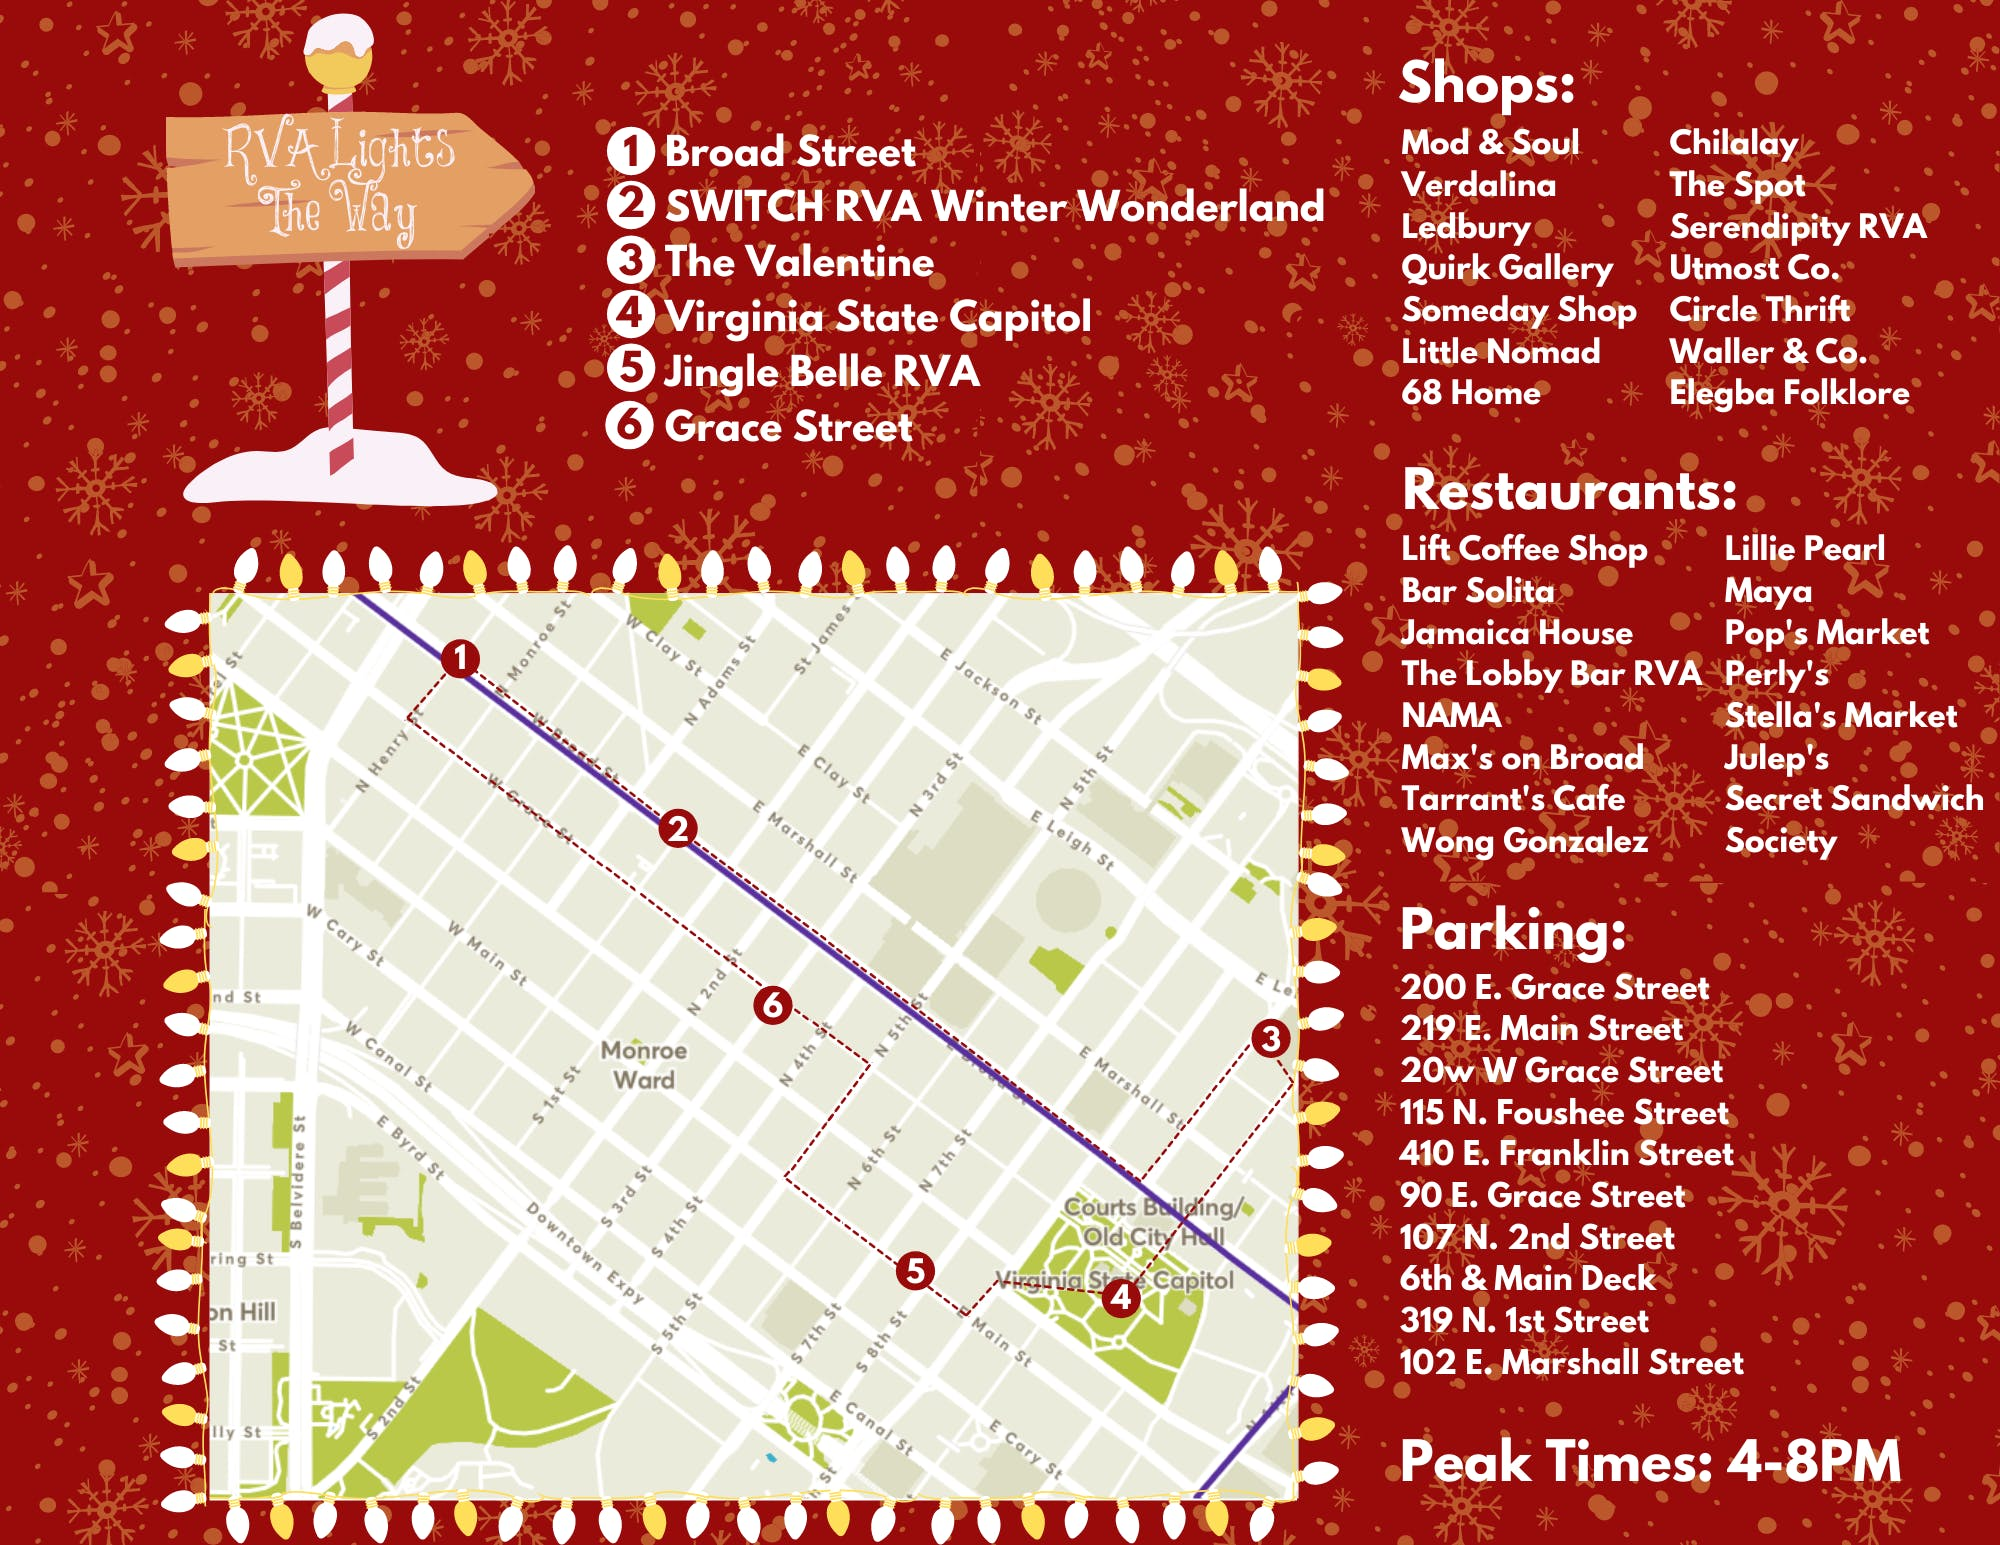 RVA Lights the Way: A Holiday Walking Tour of the Arts District